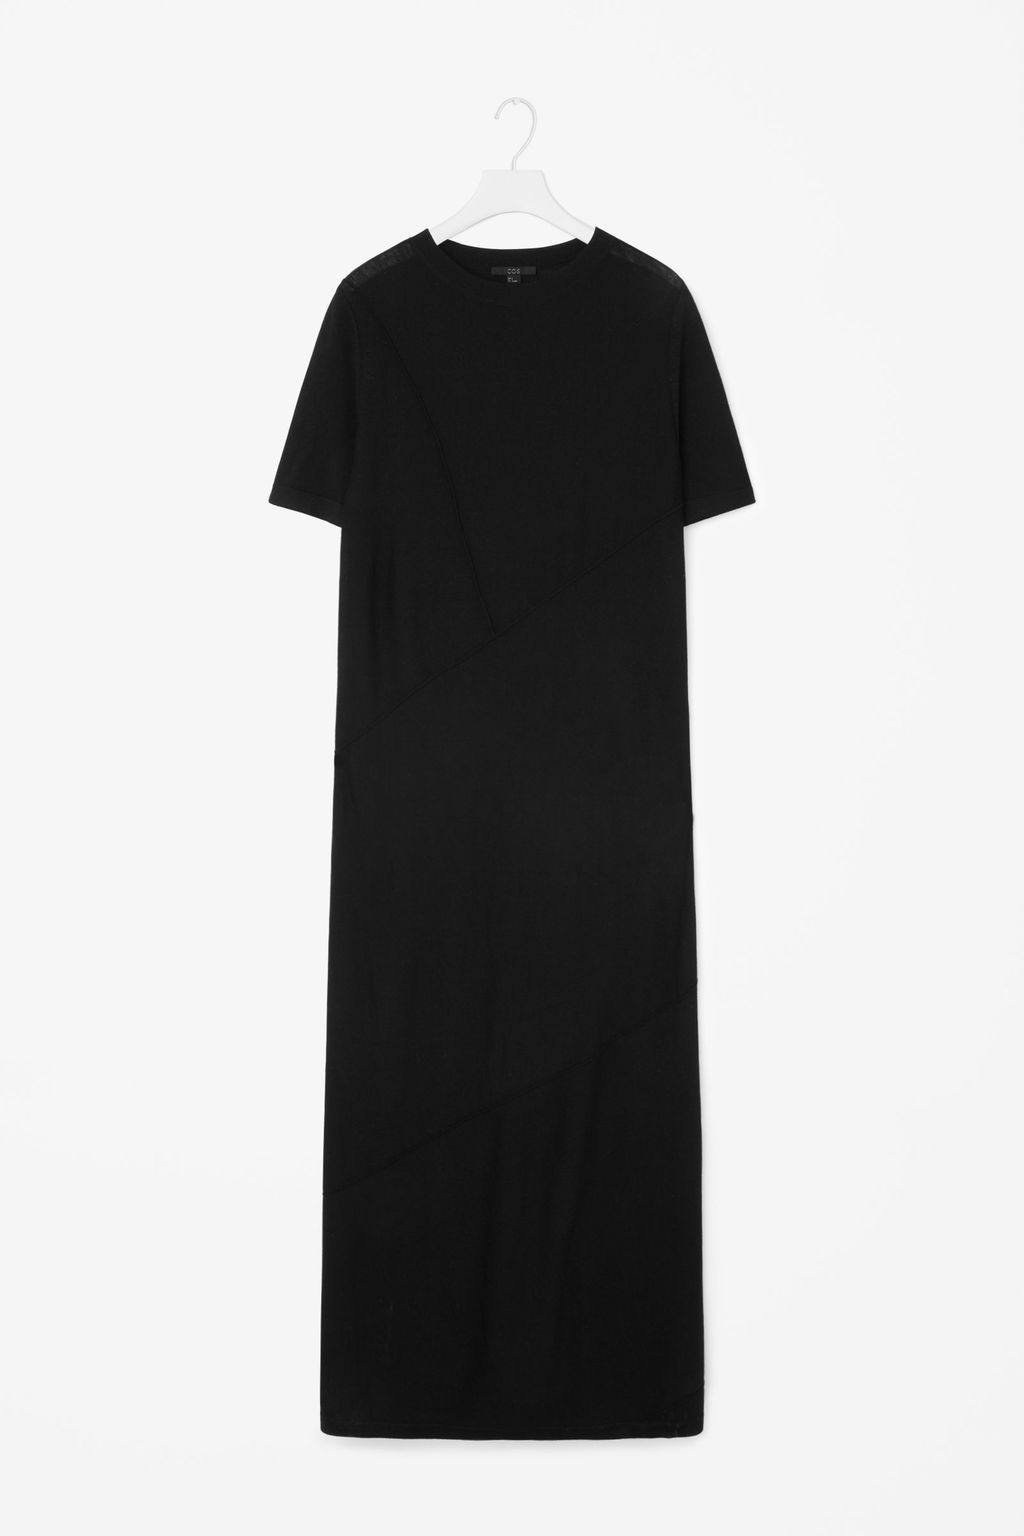 Contrast Seam Dress - pattern: plain; style: maxi dress; length: ankle length; predominant colour: black; occasions: casual; fit: straight cut; fibres: wool - 100%; neckline: crew; sleeve length: short sleeve; sleeve style: standard; pattern type: fabric; texture group: woven light midweight; season: s/s 2016